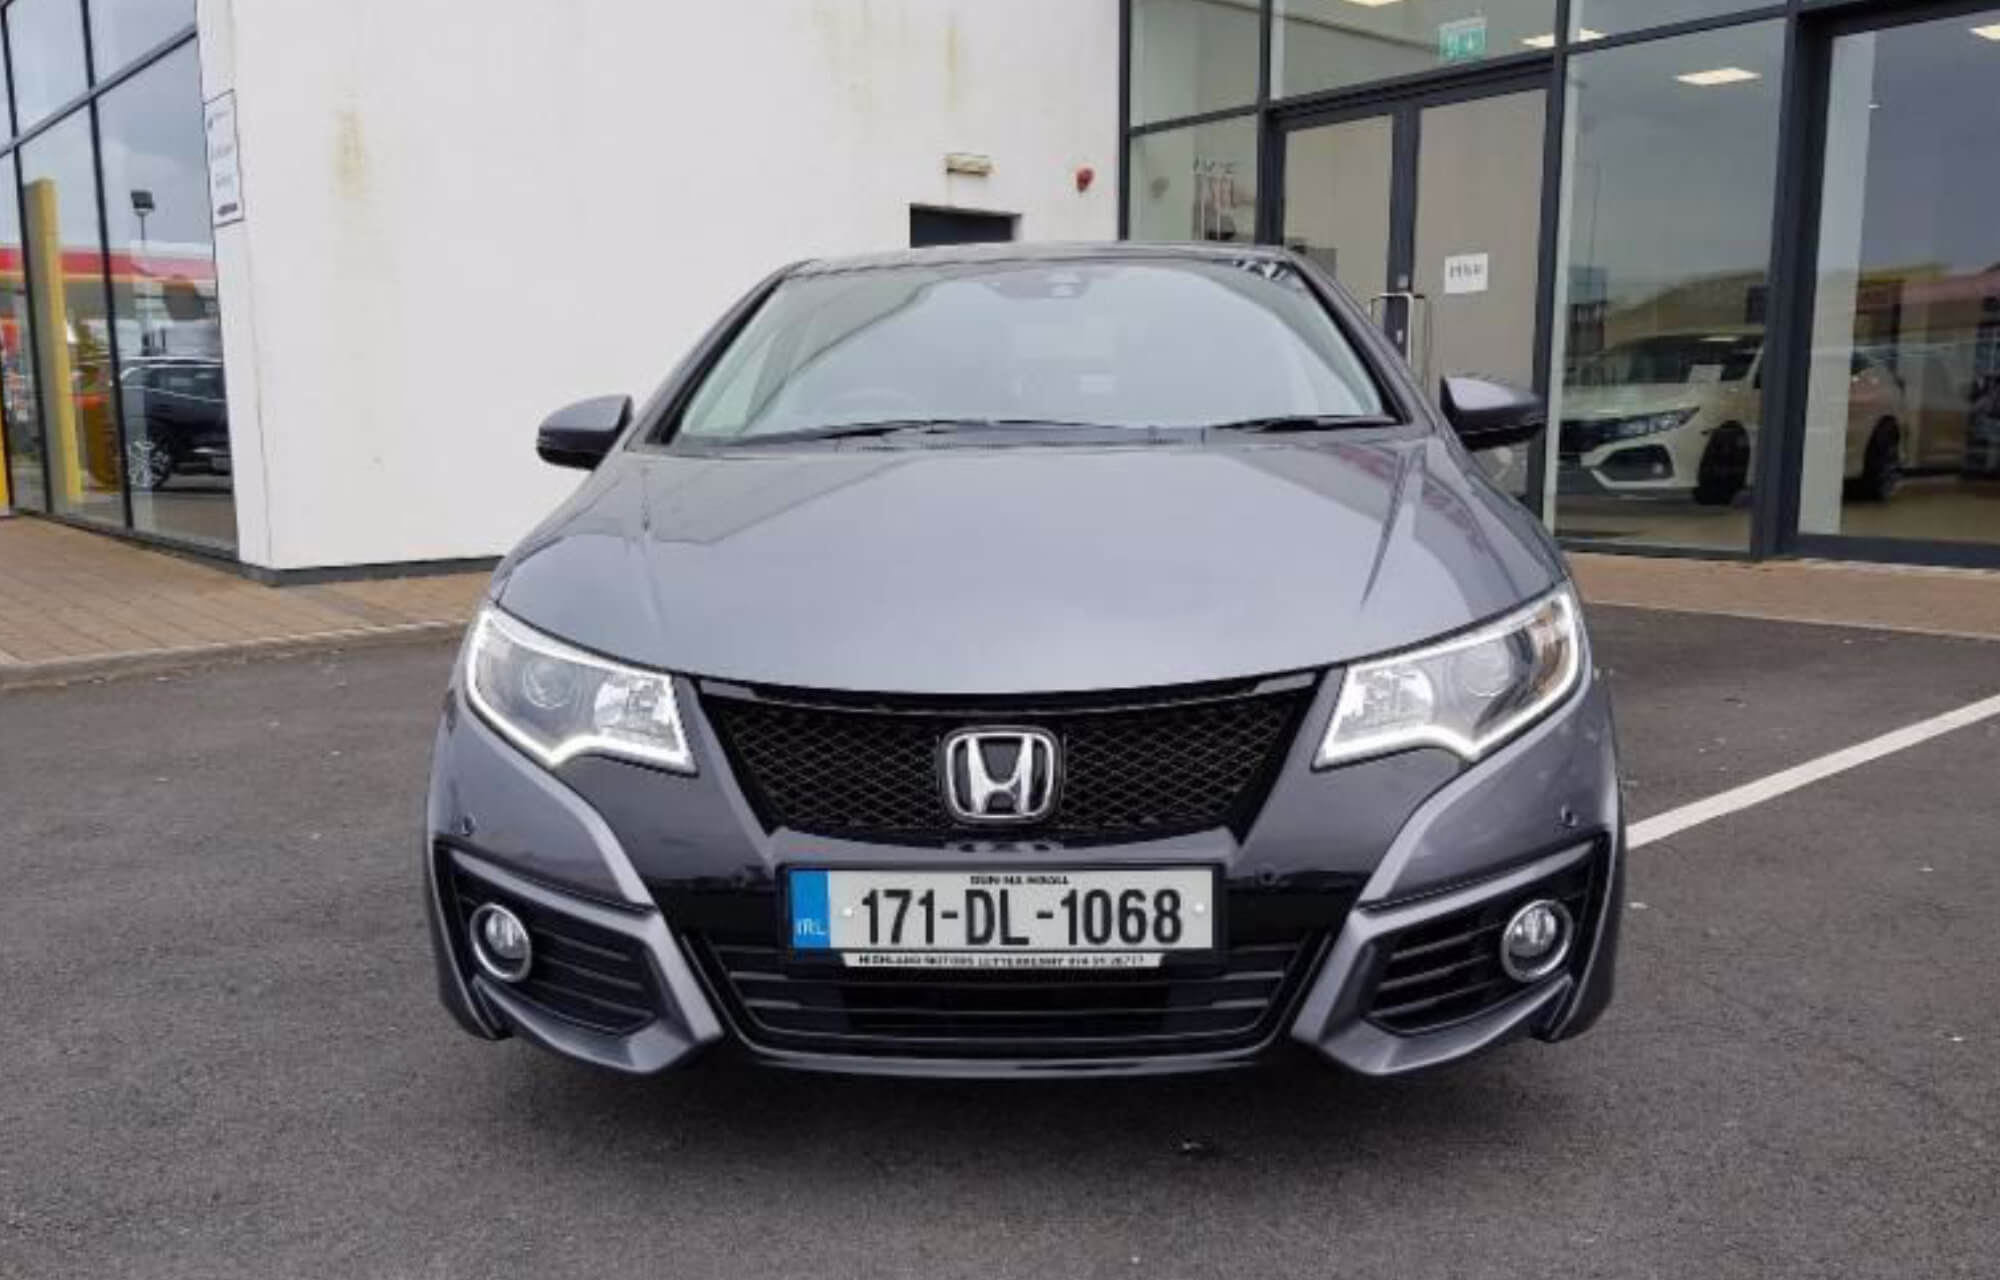 2017 (171) Honda Civic 1.6 i-DTEC Sport available from €59 Per Week at Highland Motors Honda